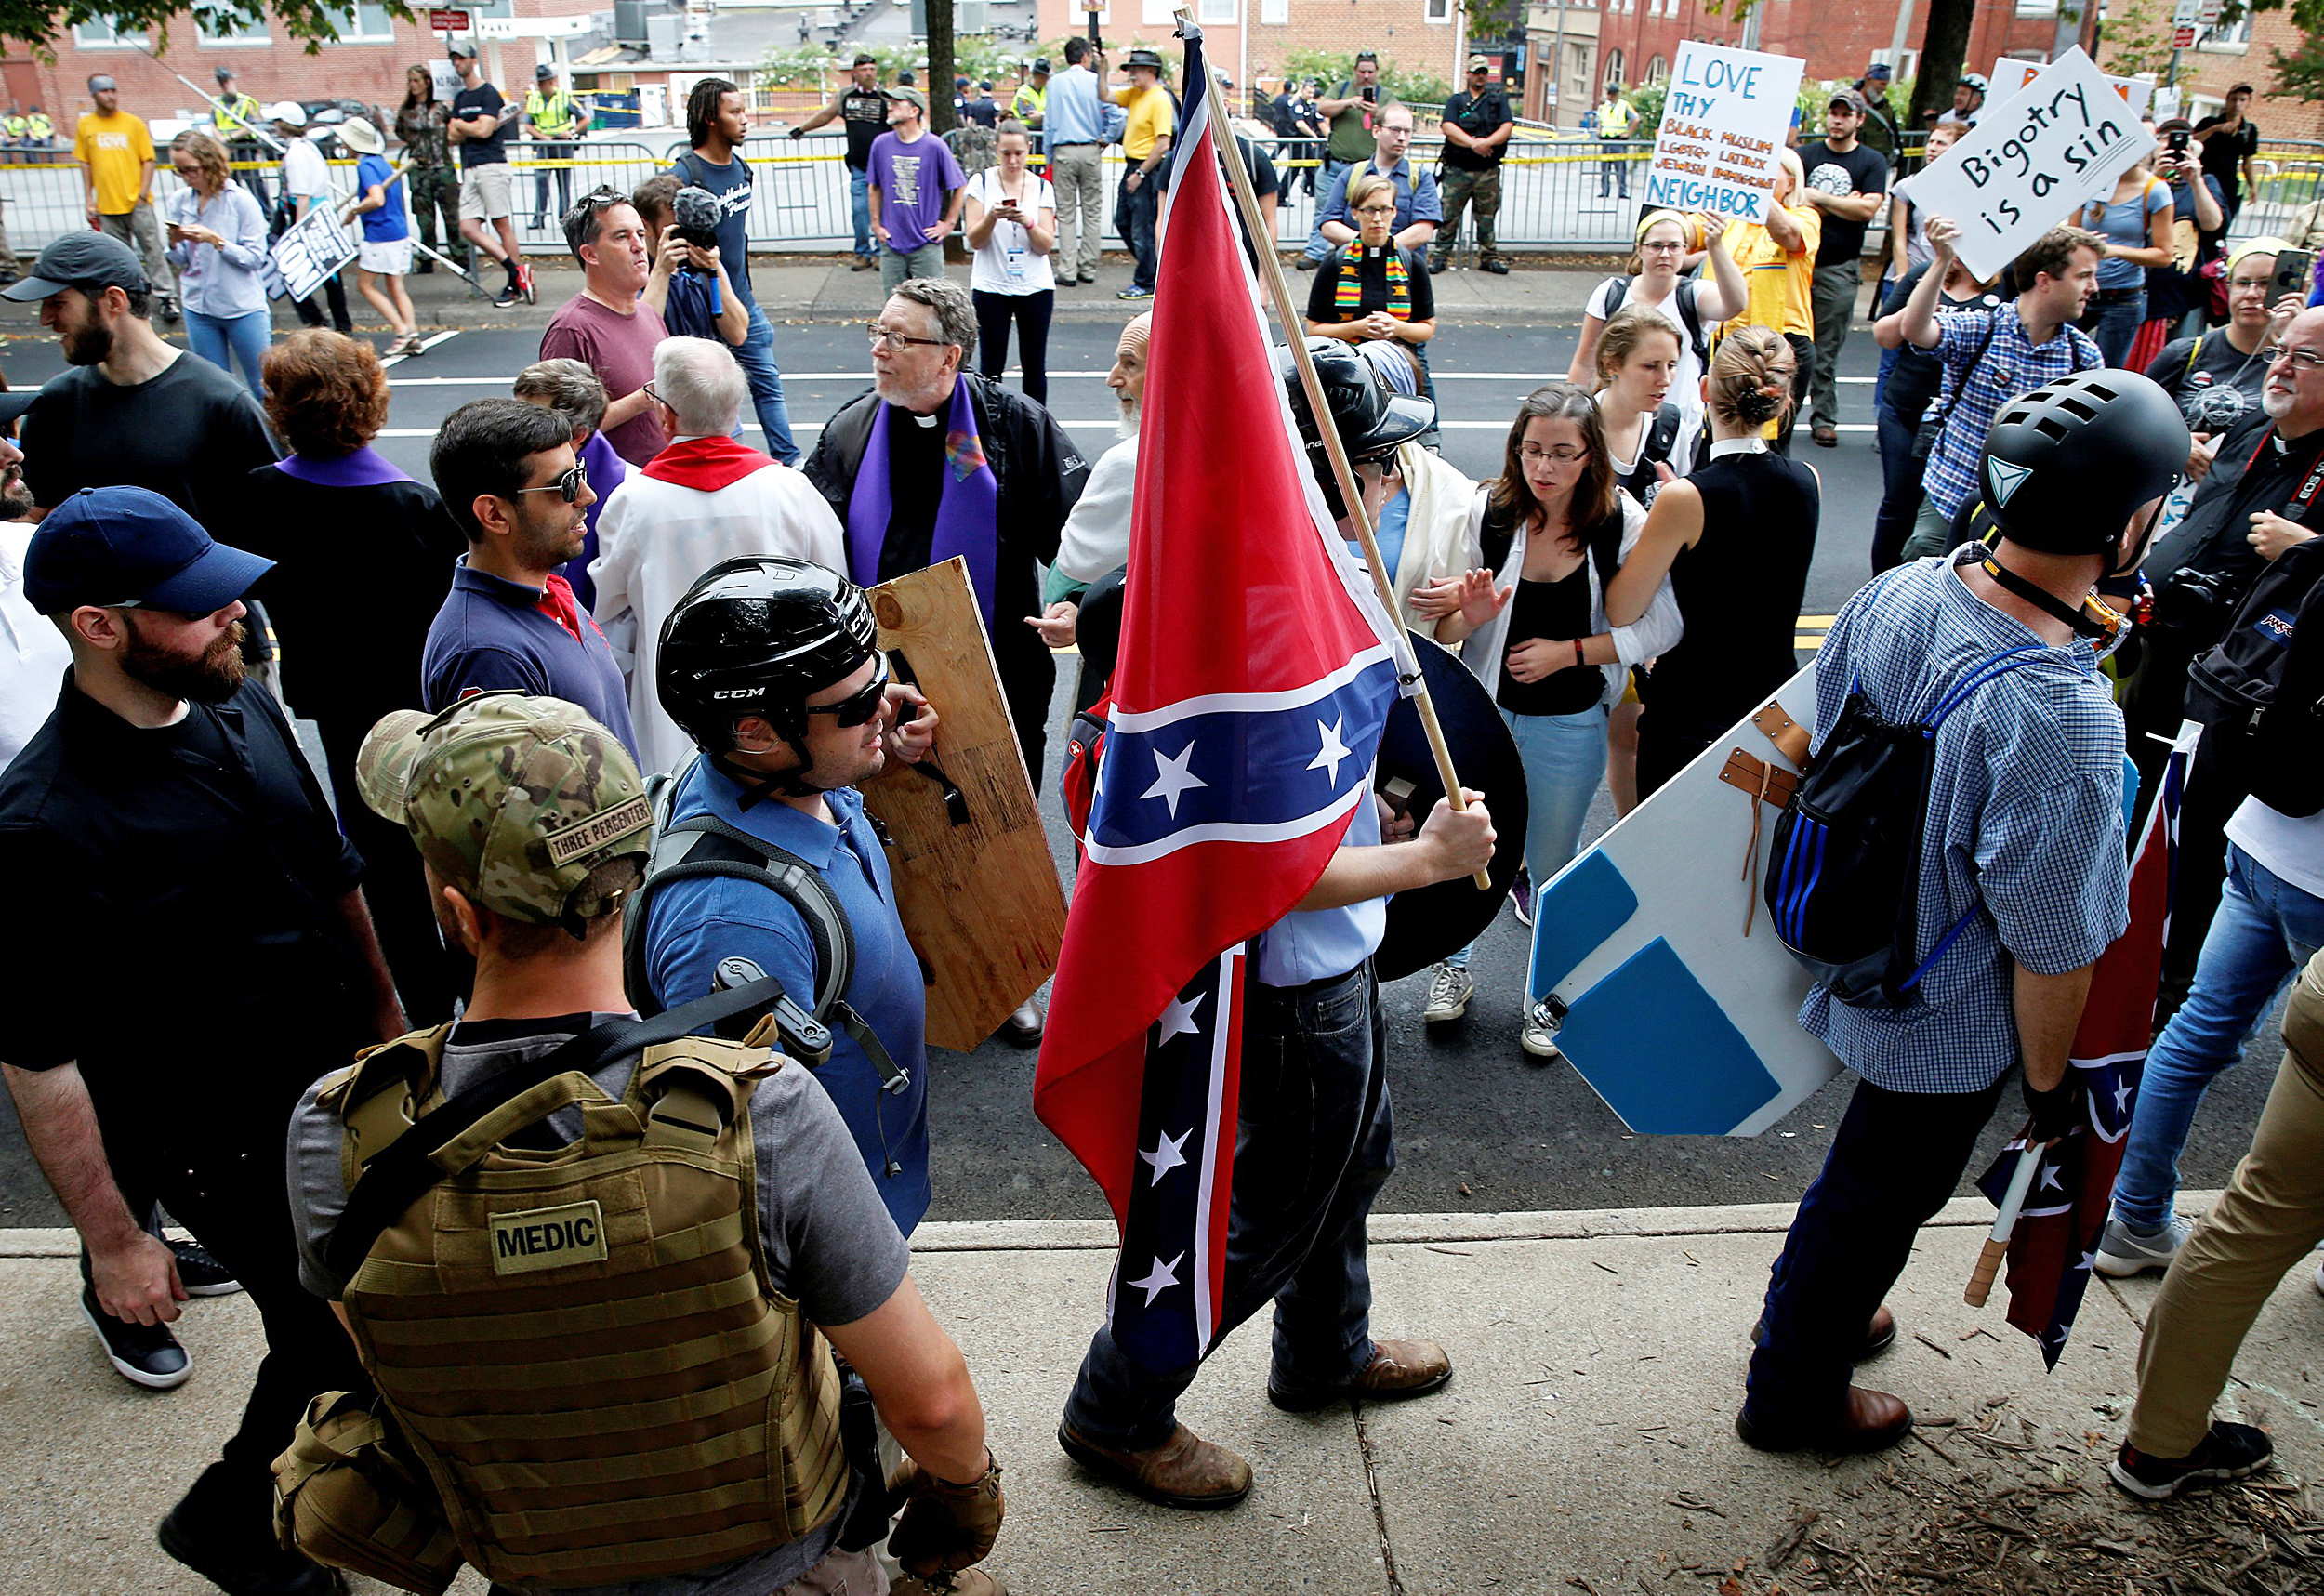 Violence-at-Charlottesville-Rally-Prompts-State-of-Emergency